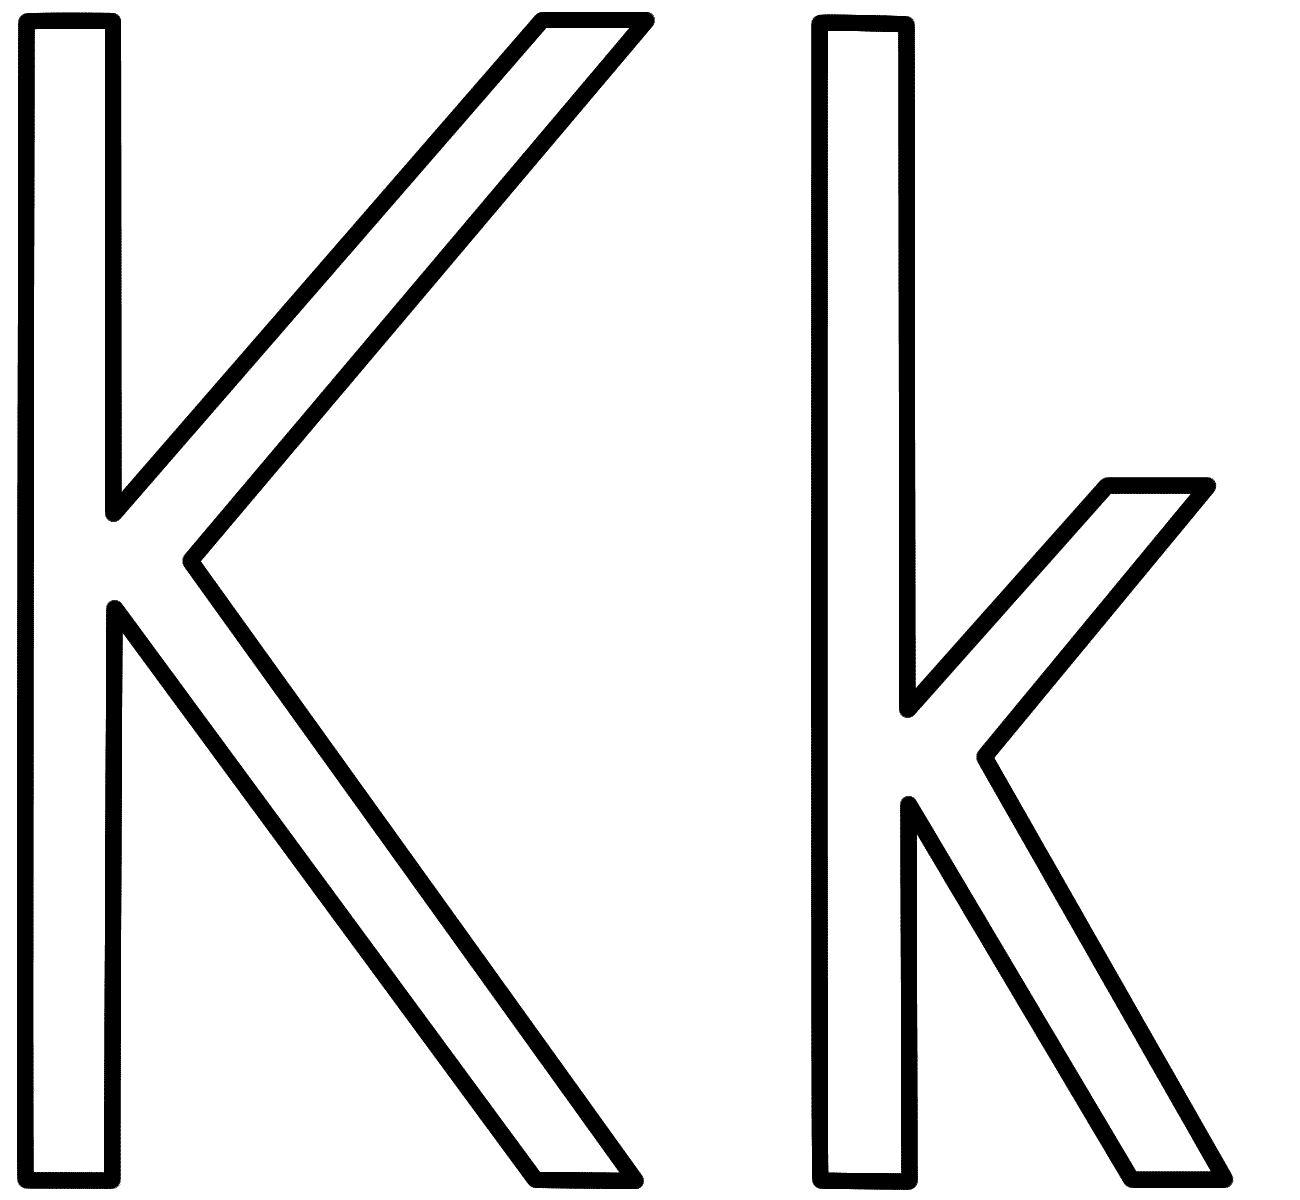 fancy k coloring pages letter k is for kitten coloring page free printable pages k fancy coloring